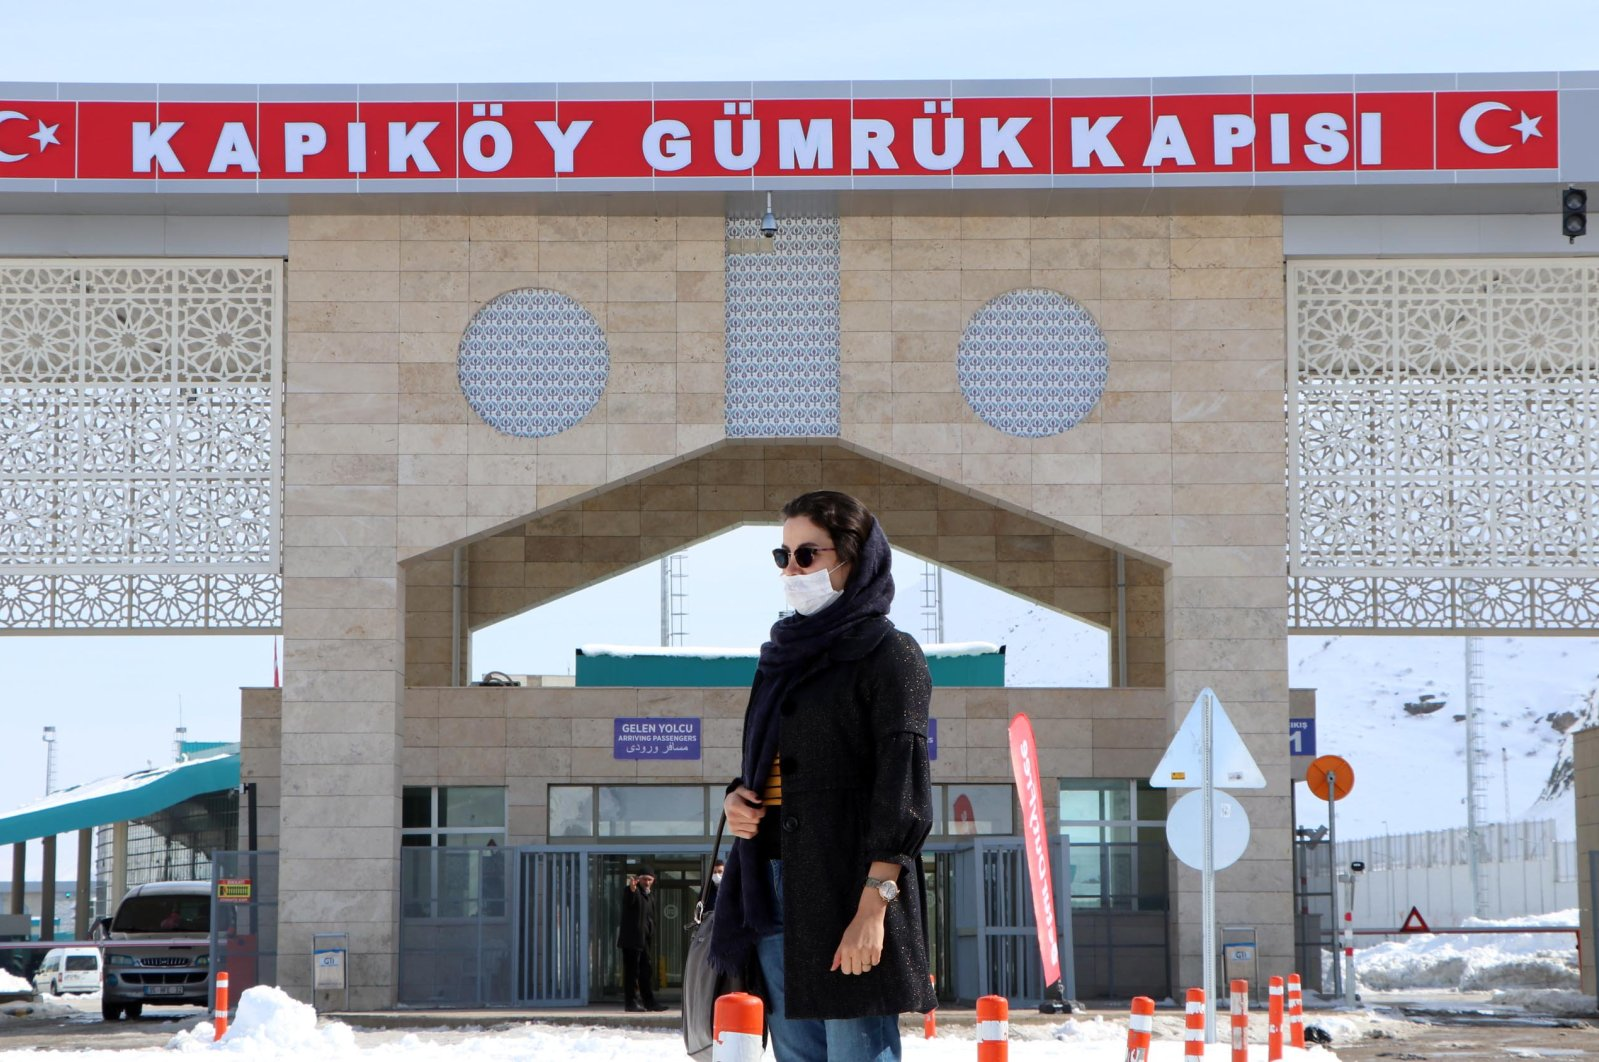 A woman stands in front of the Kapıköy Border Gate in eastern Turkey's Van province near the Iranian border, Feb. 24, 2020. (DHA Photo)